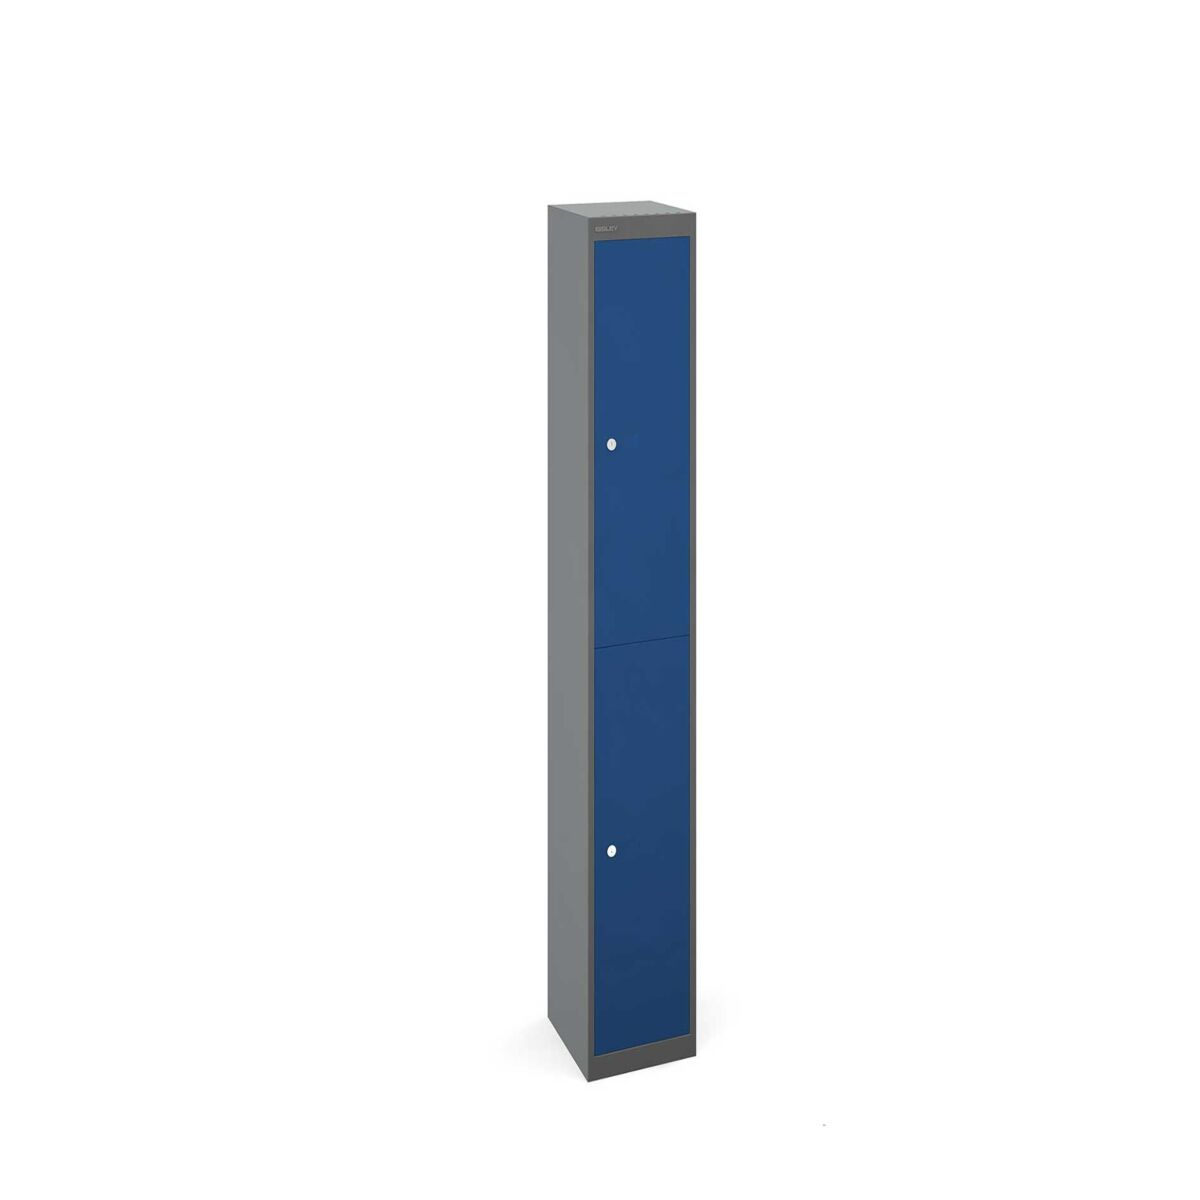 Bisley Universal Steel Locker 2 Door